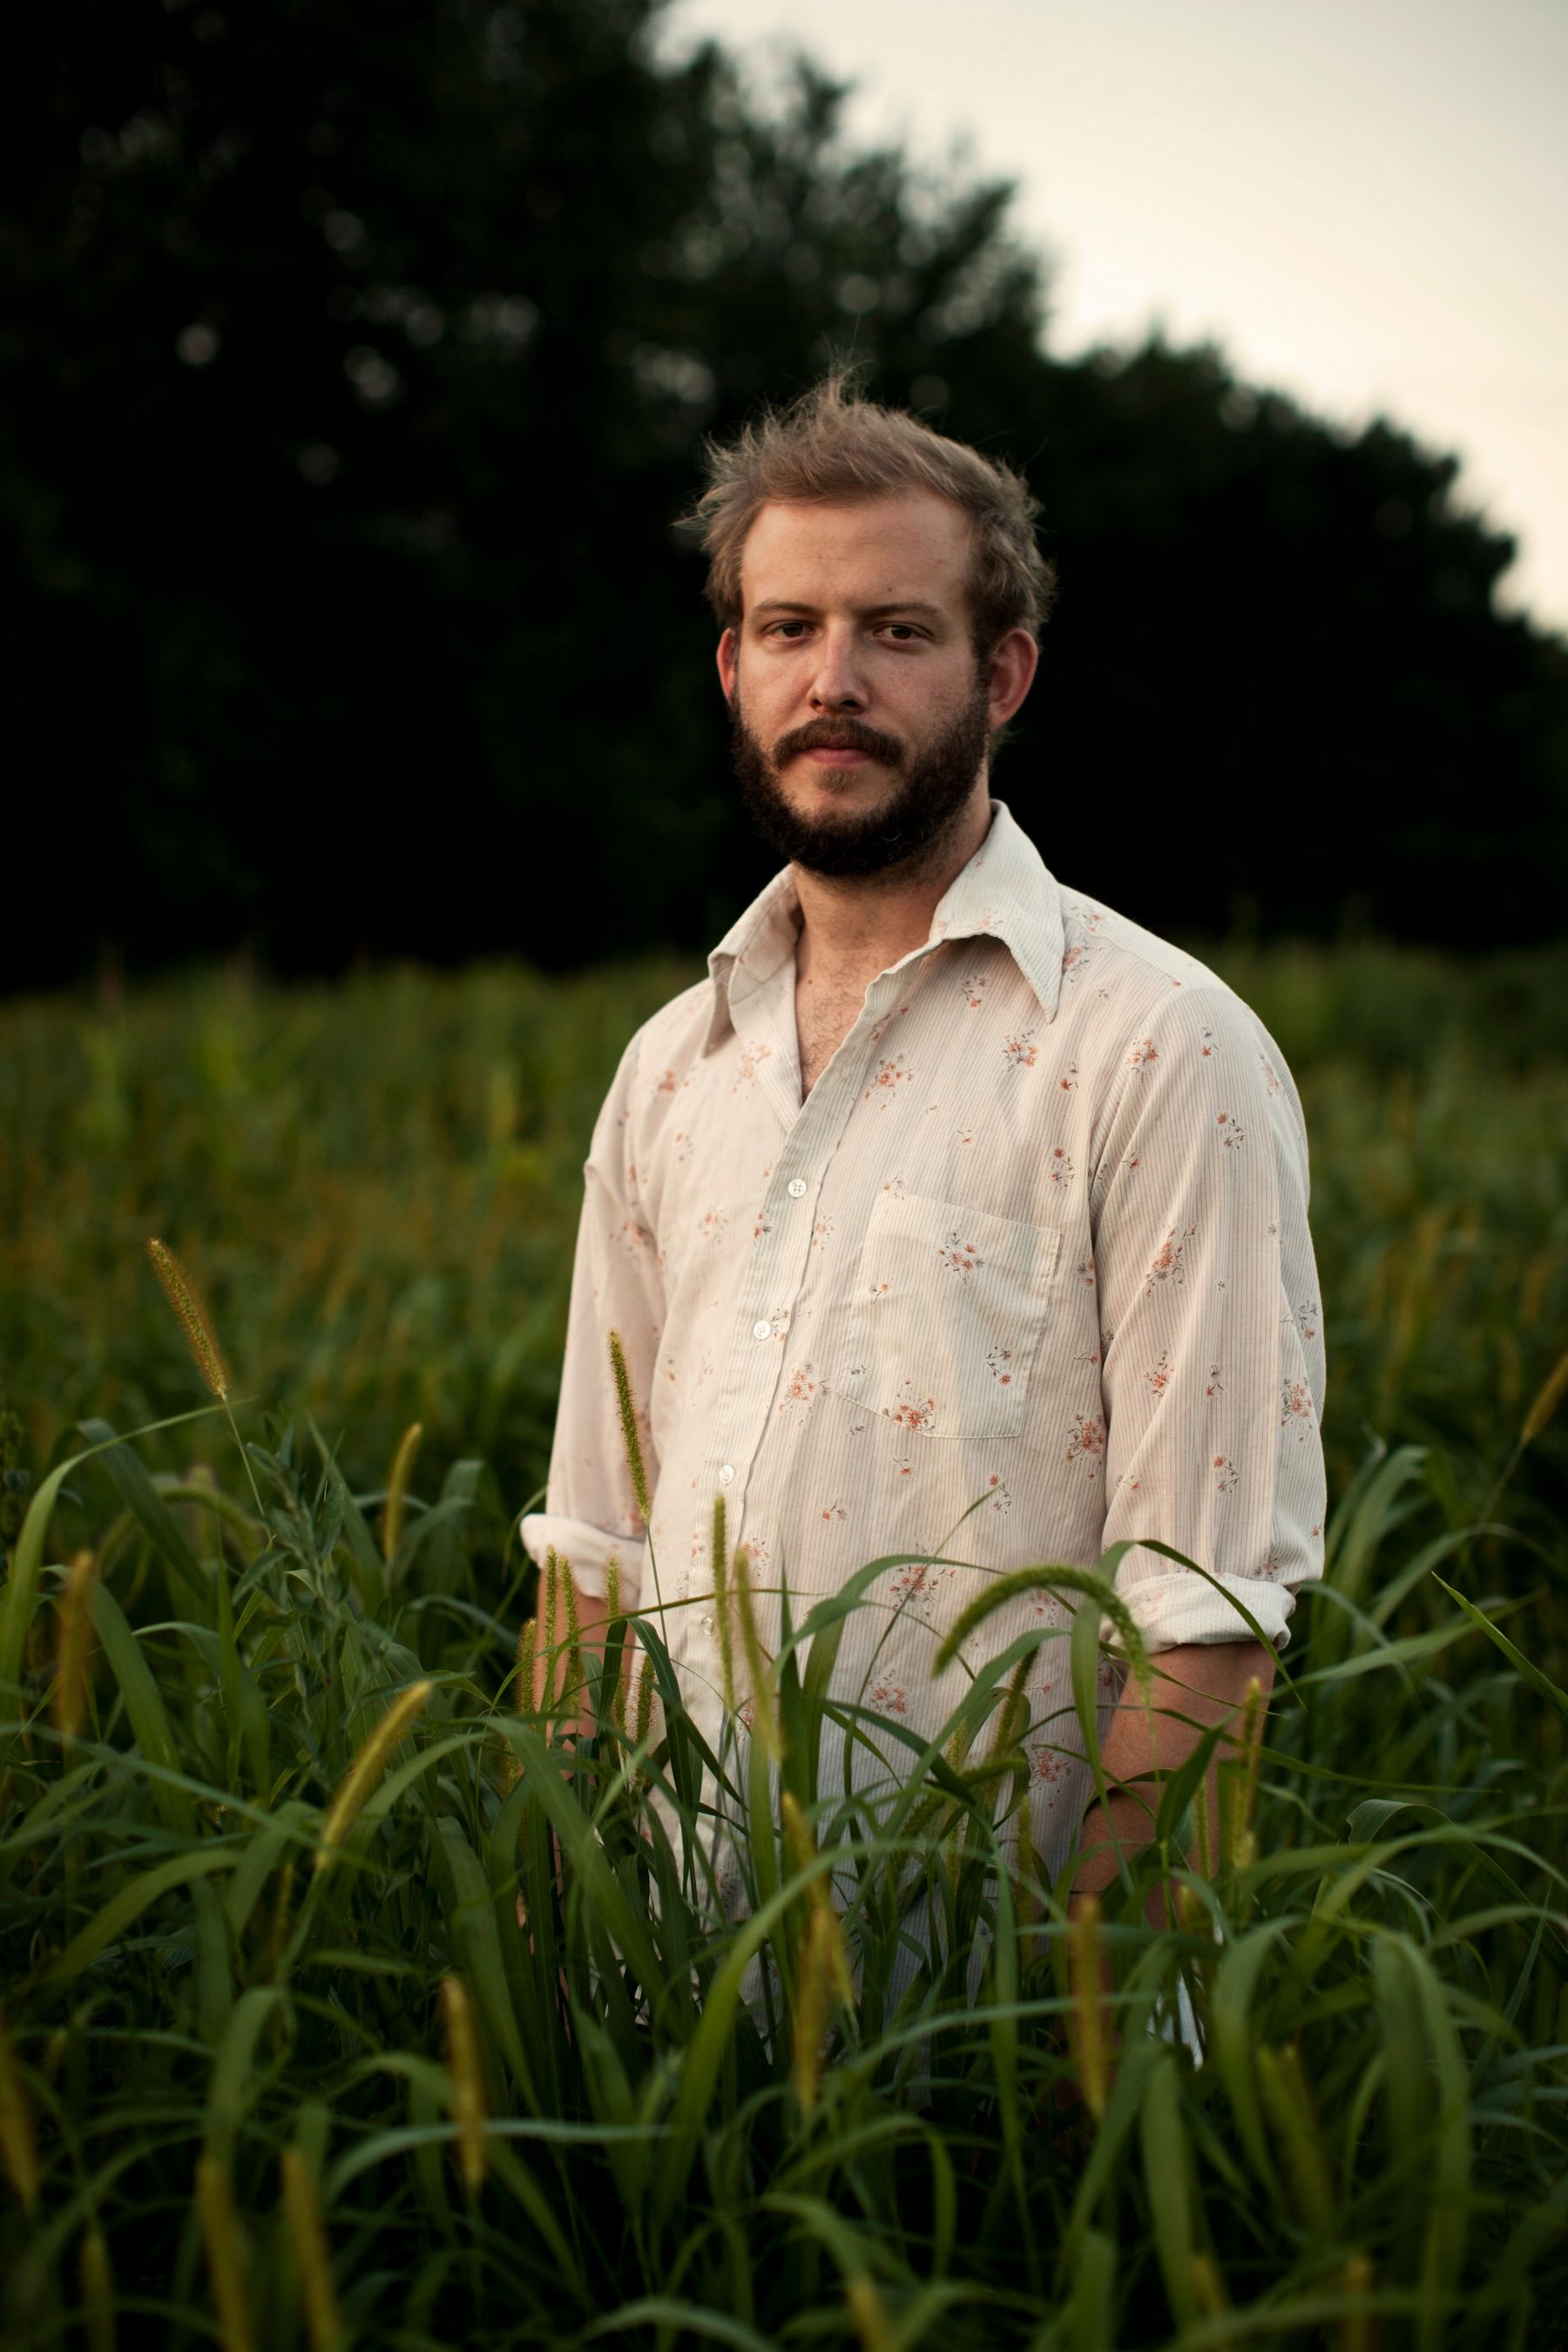 Pin by Nathan Grosse on Everything Justin Vernon in 2019 | Bon iver